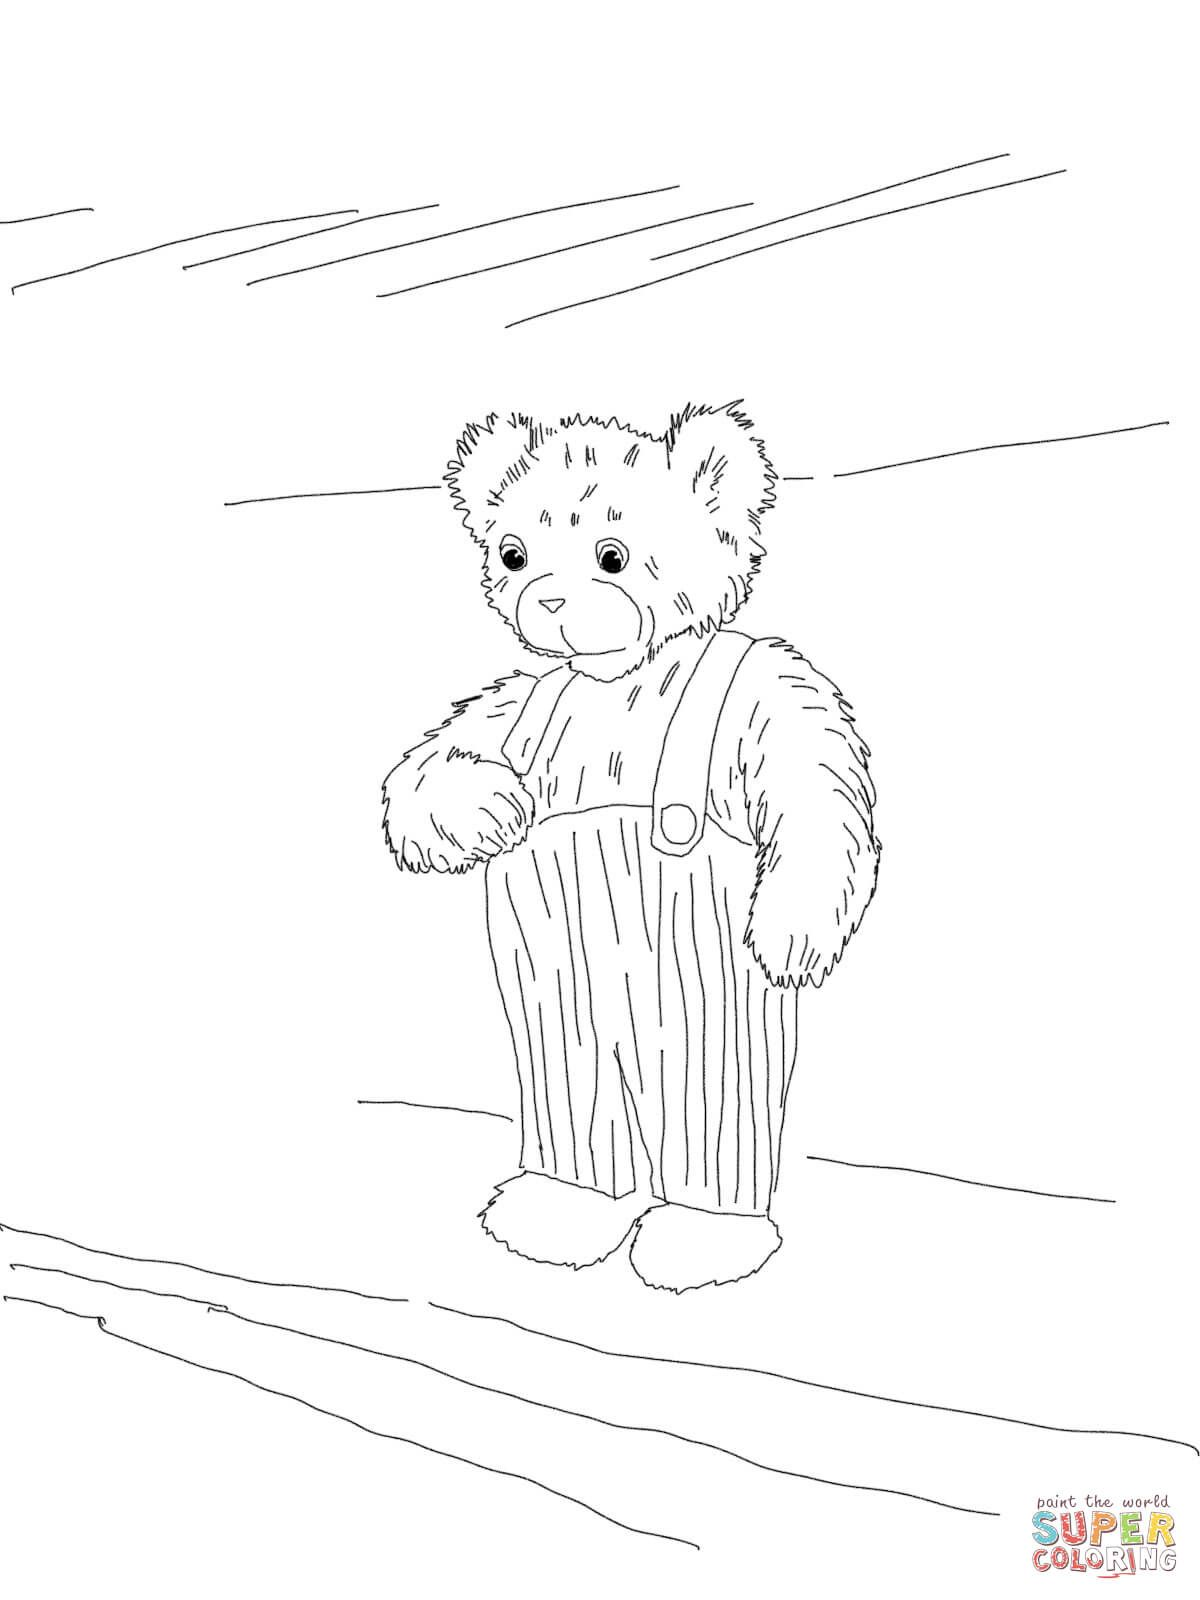 Corduroy Bear Coloring Page From Corduroy Category Select From